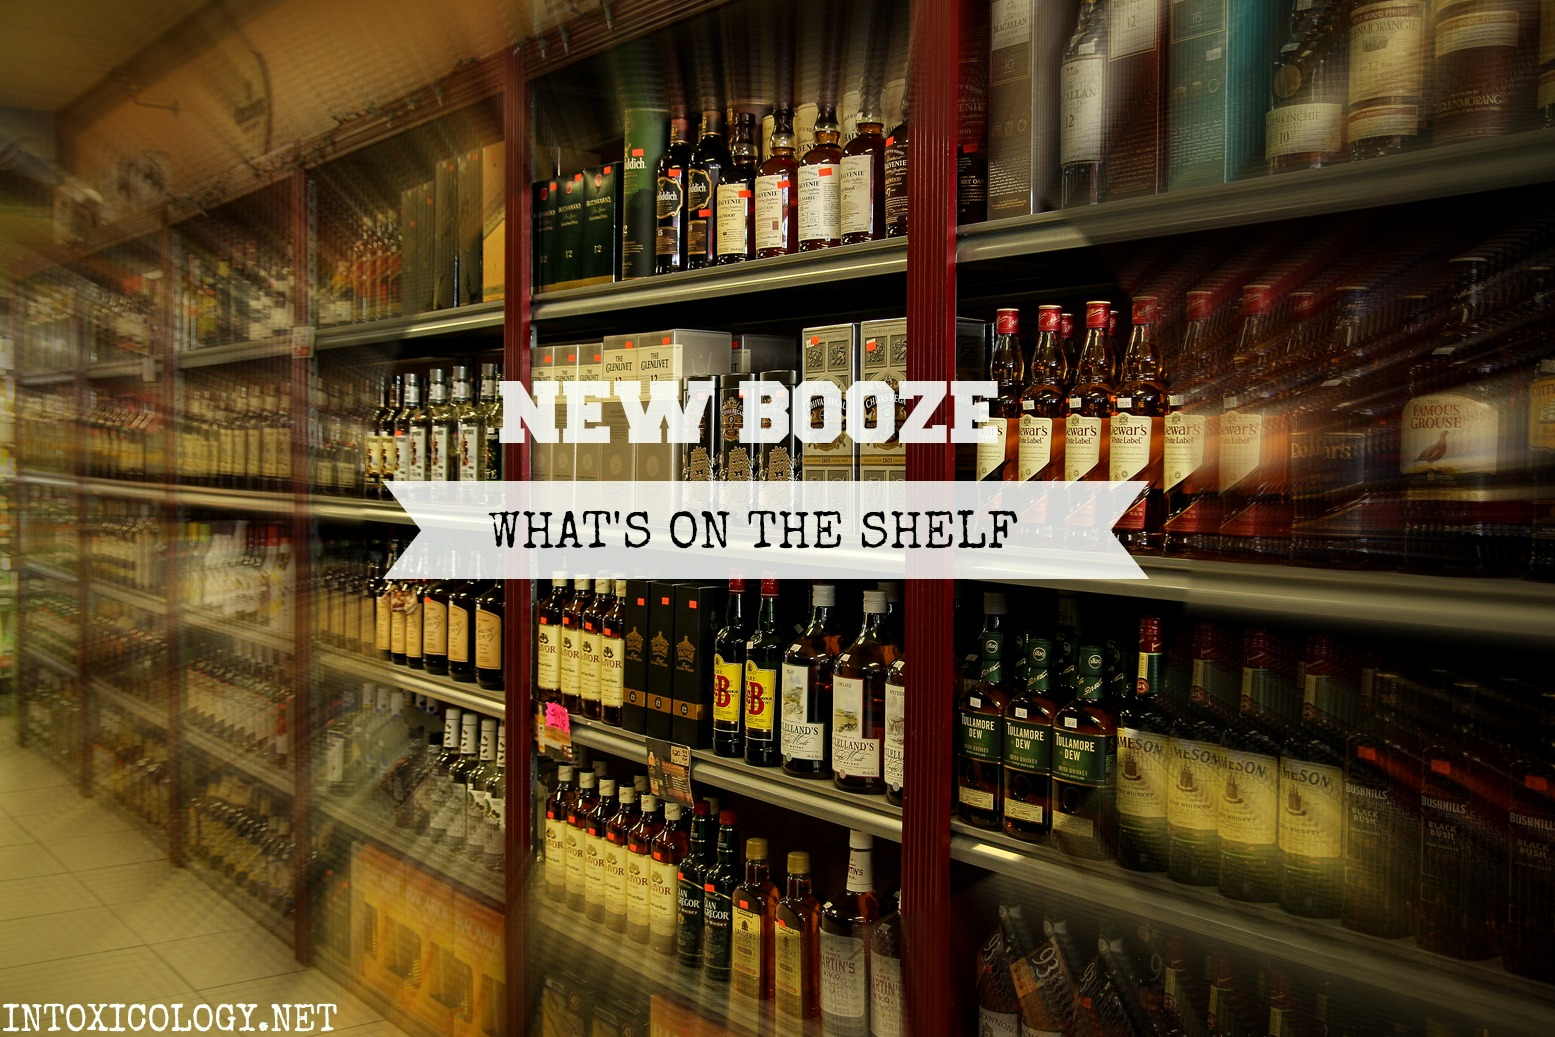 New Booze: Flavored Rums, Rye Whisky, Crazy Vodkas, and more…